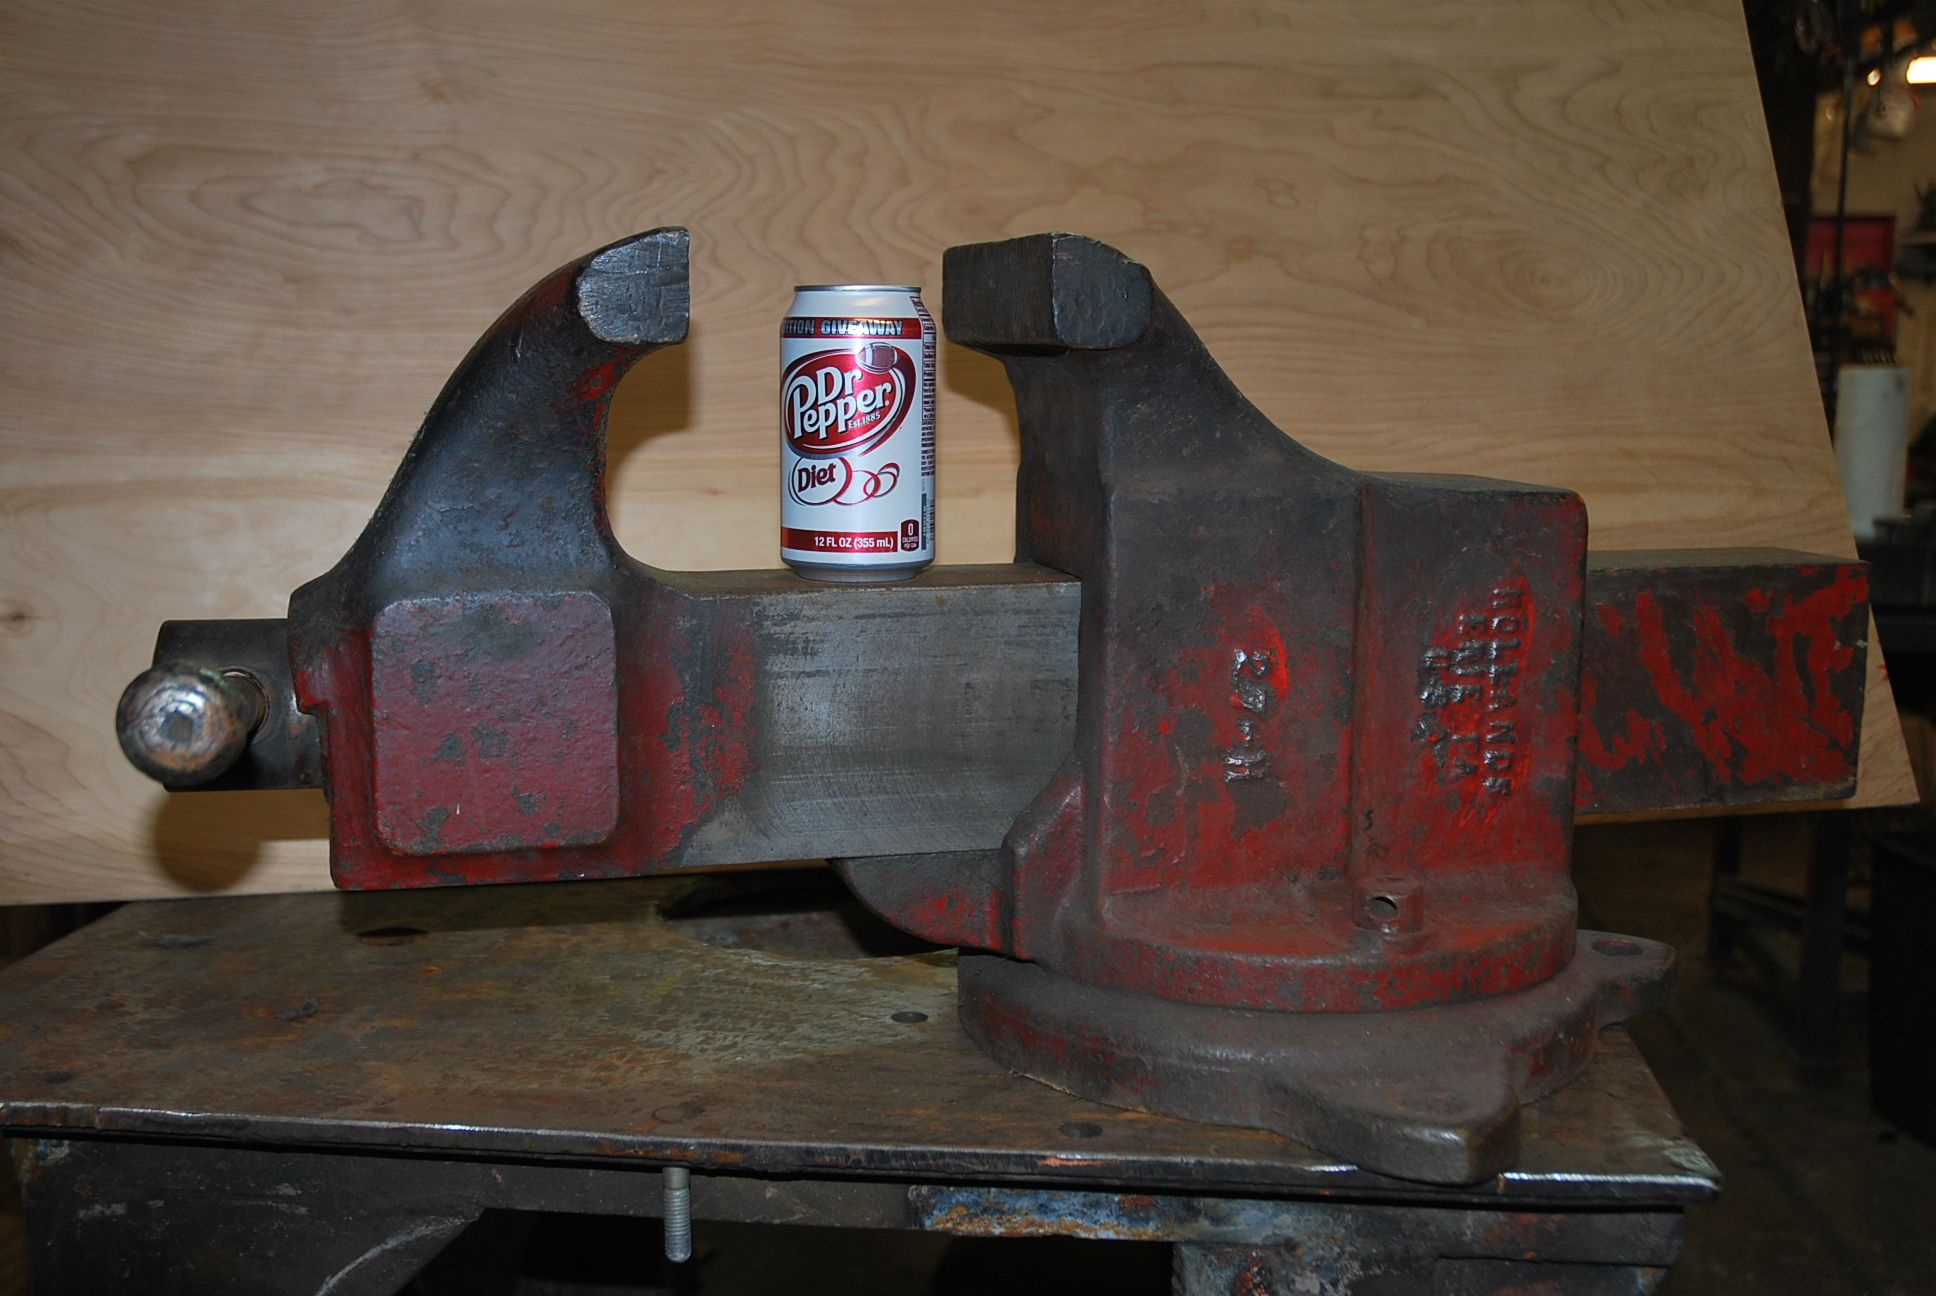 This Is One Of My Vises A Big Guy Hollands 27 H 7 Wide Jaws And Weights In At 220 Lbs Some Day I Will Restore It Bench Vise Vises Bench Vice